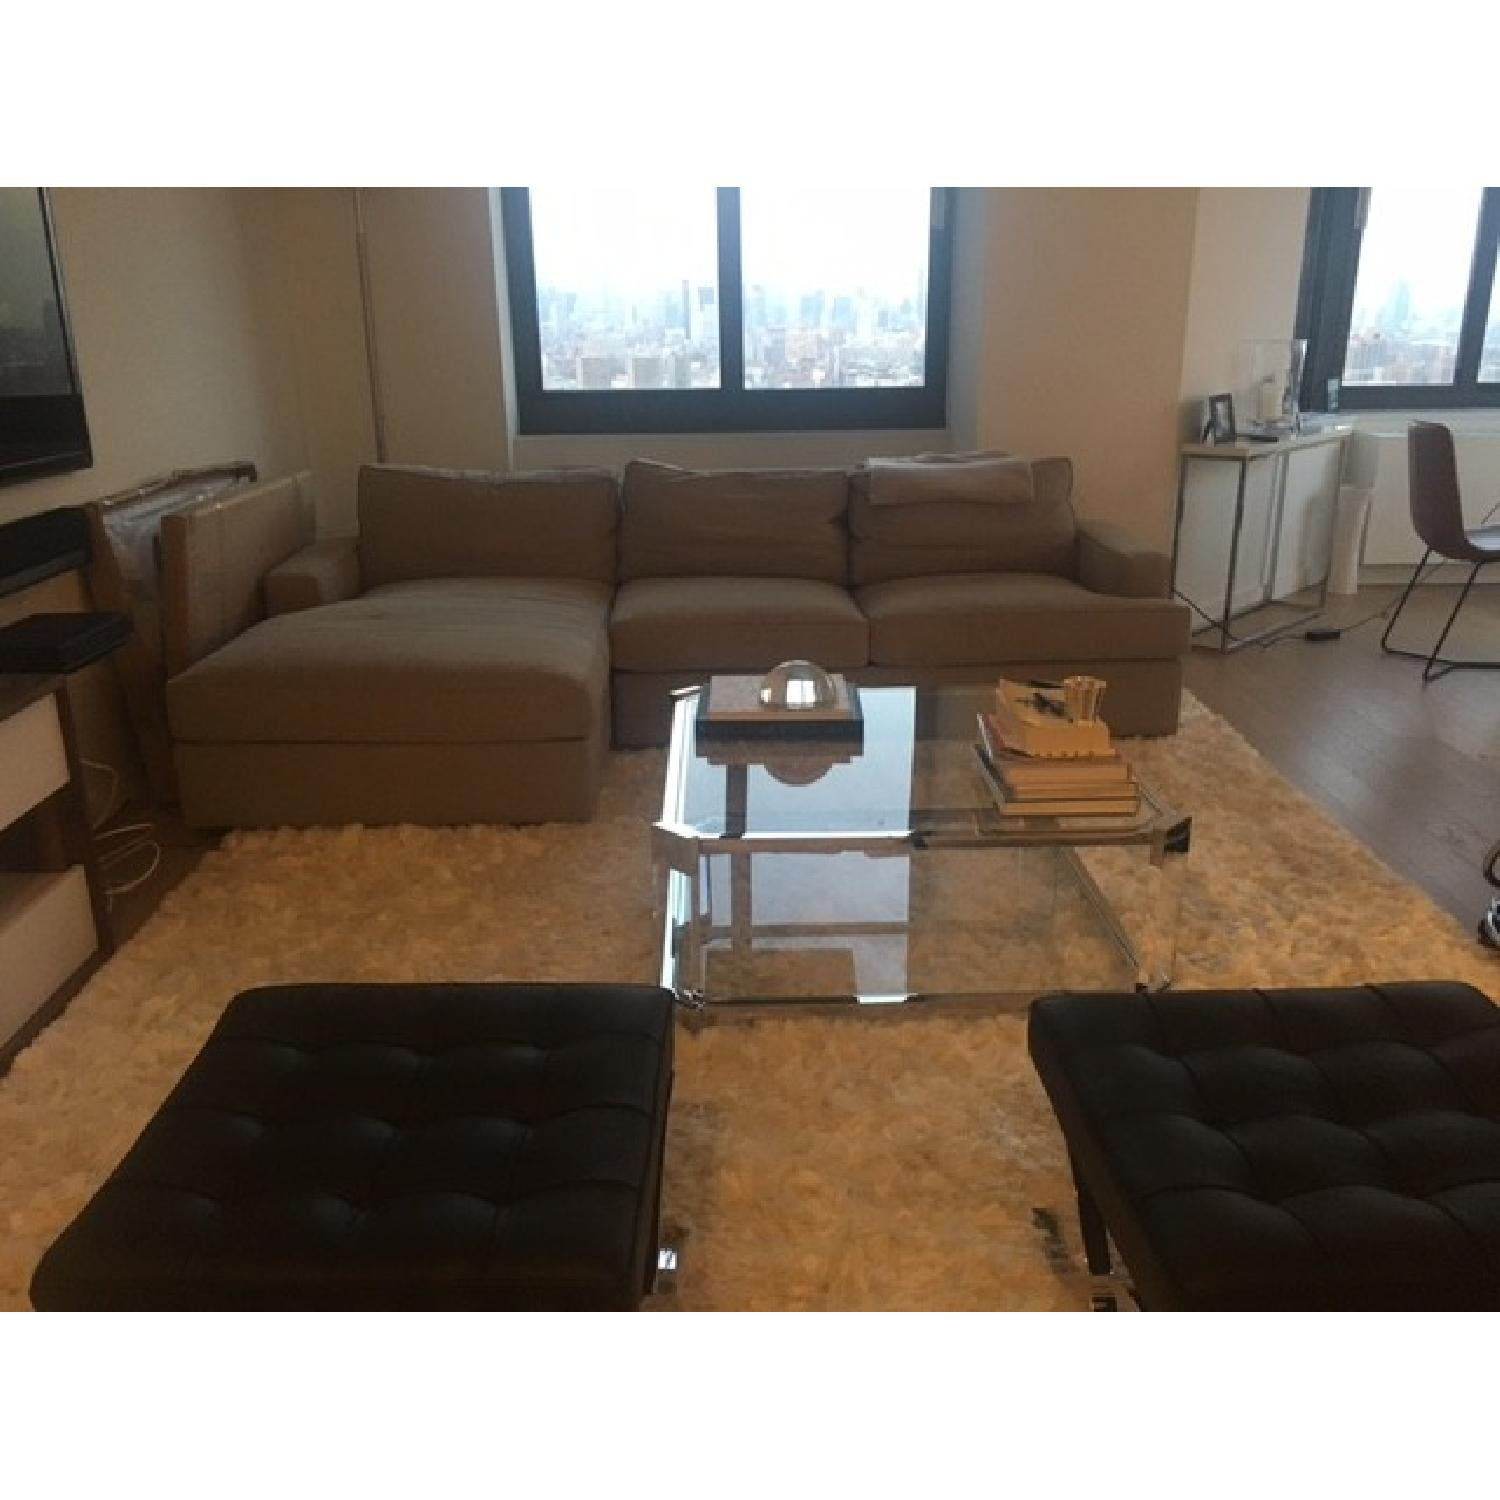 Room & Board Sectional w/ Chaise - image-3